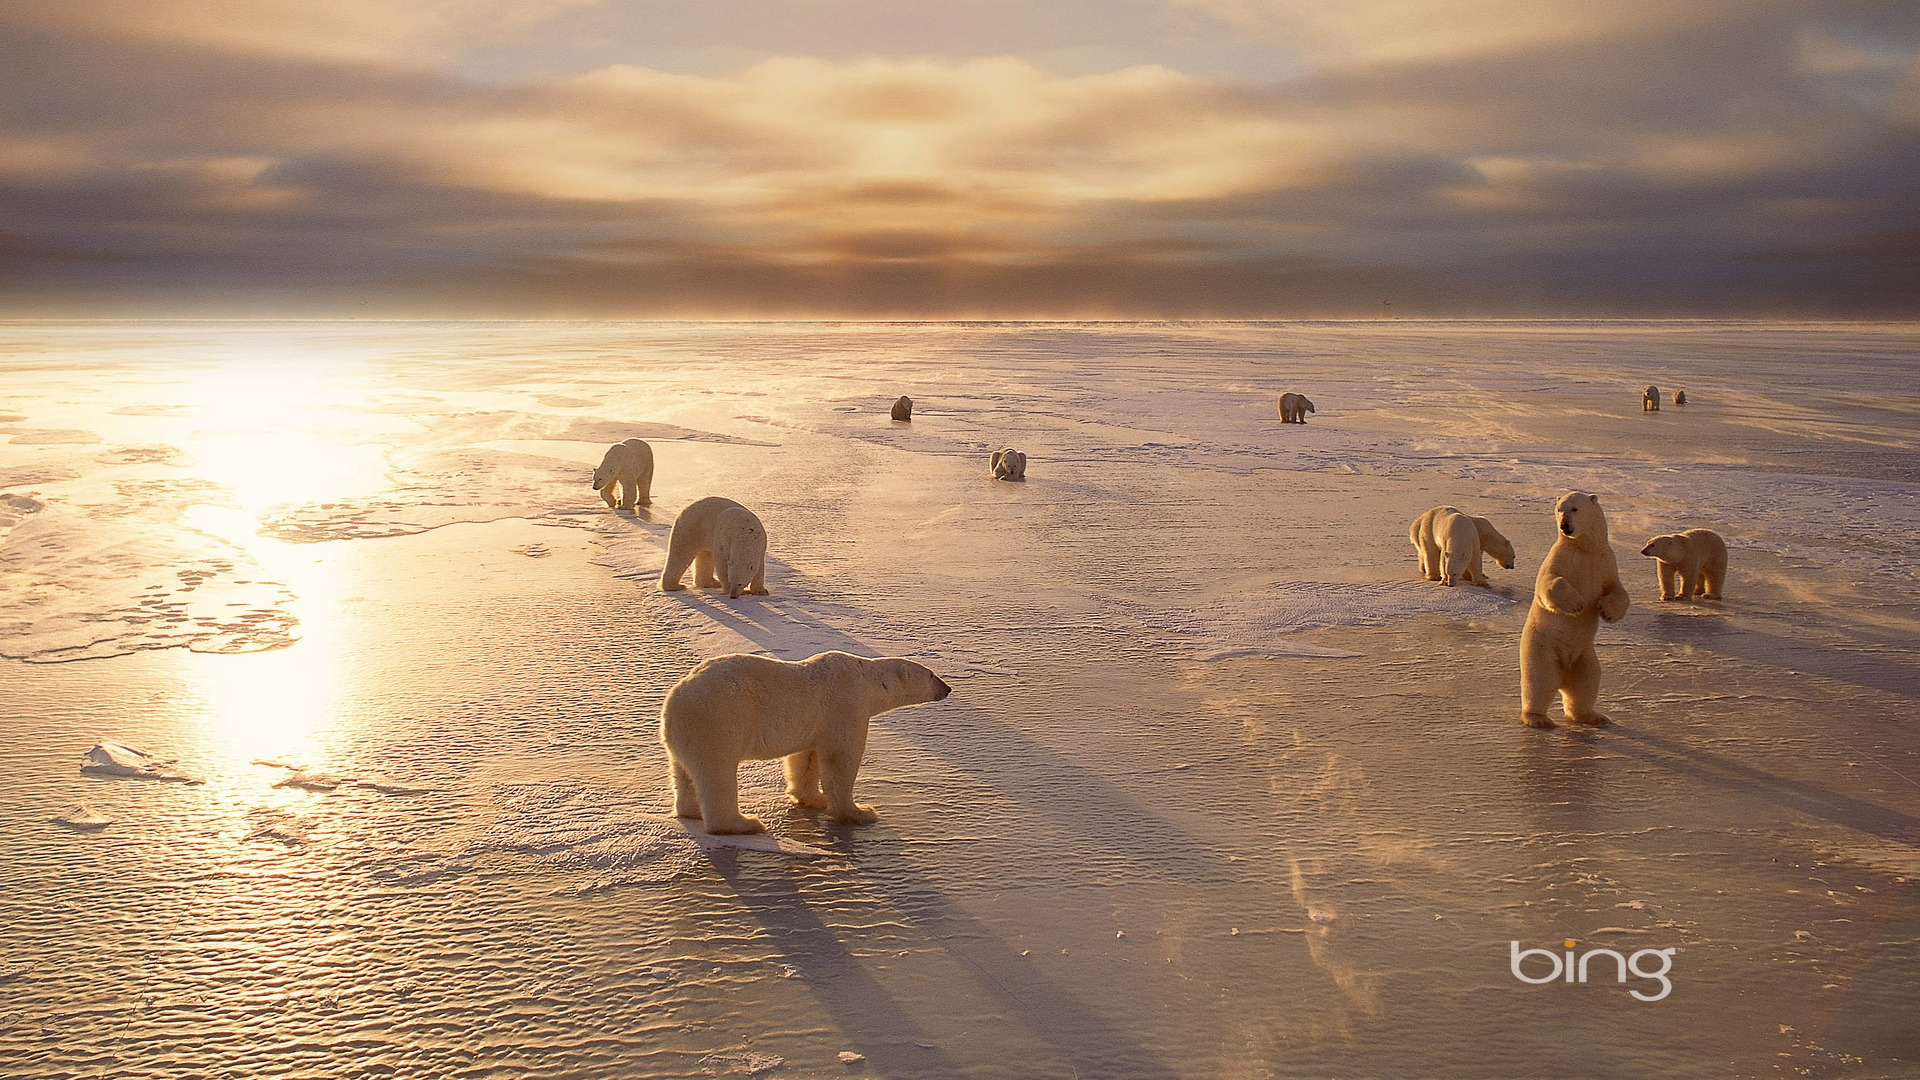 Bing-churchills-polar-bears-in-canada-bing-1920x1080-wallpaper-wp3603338